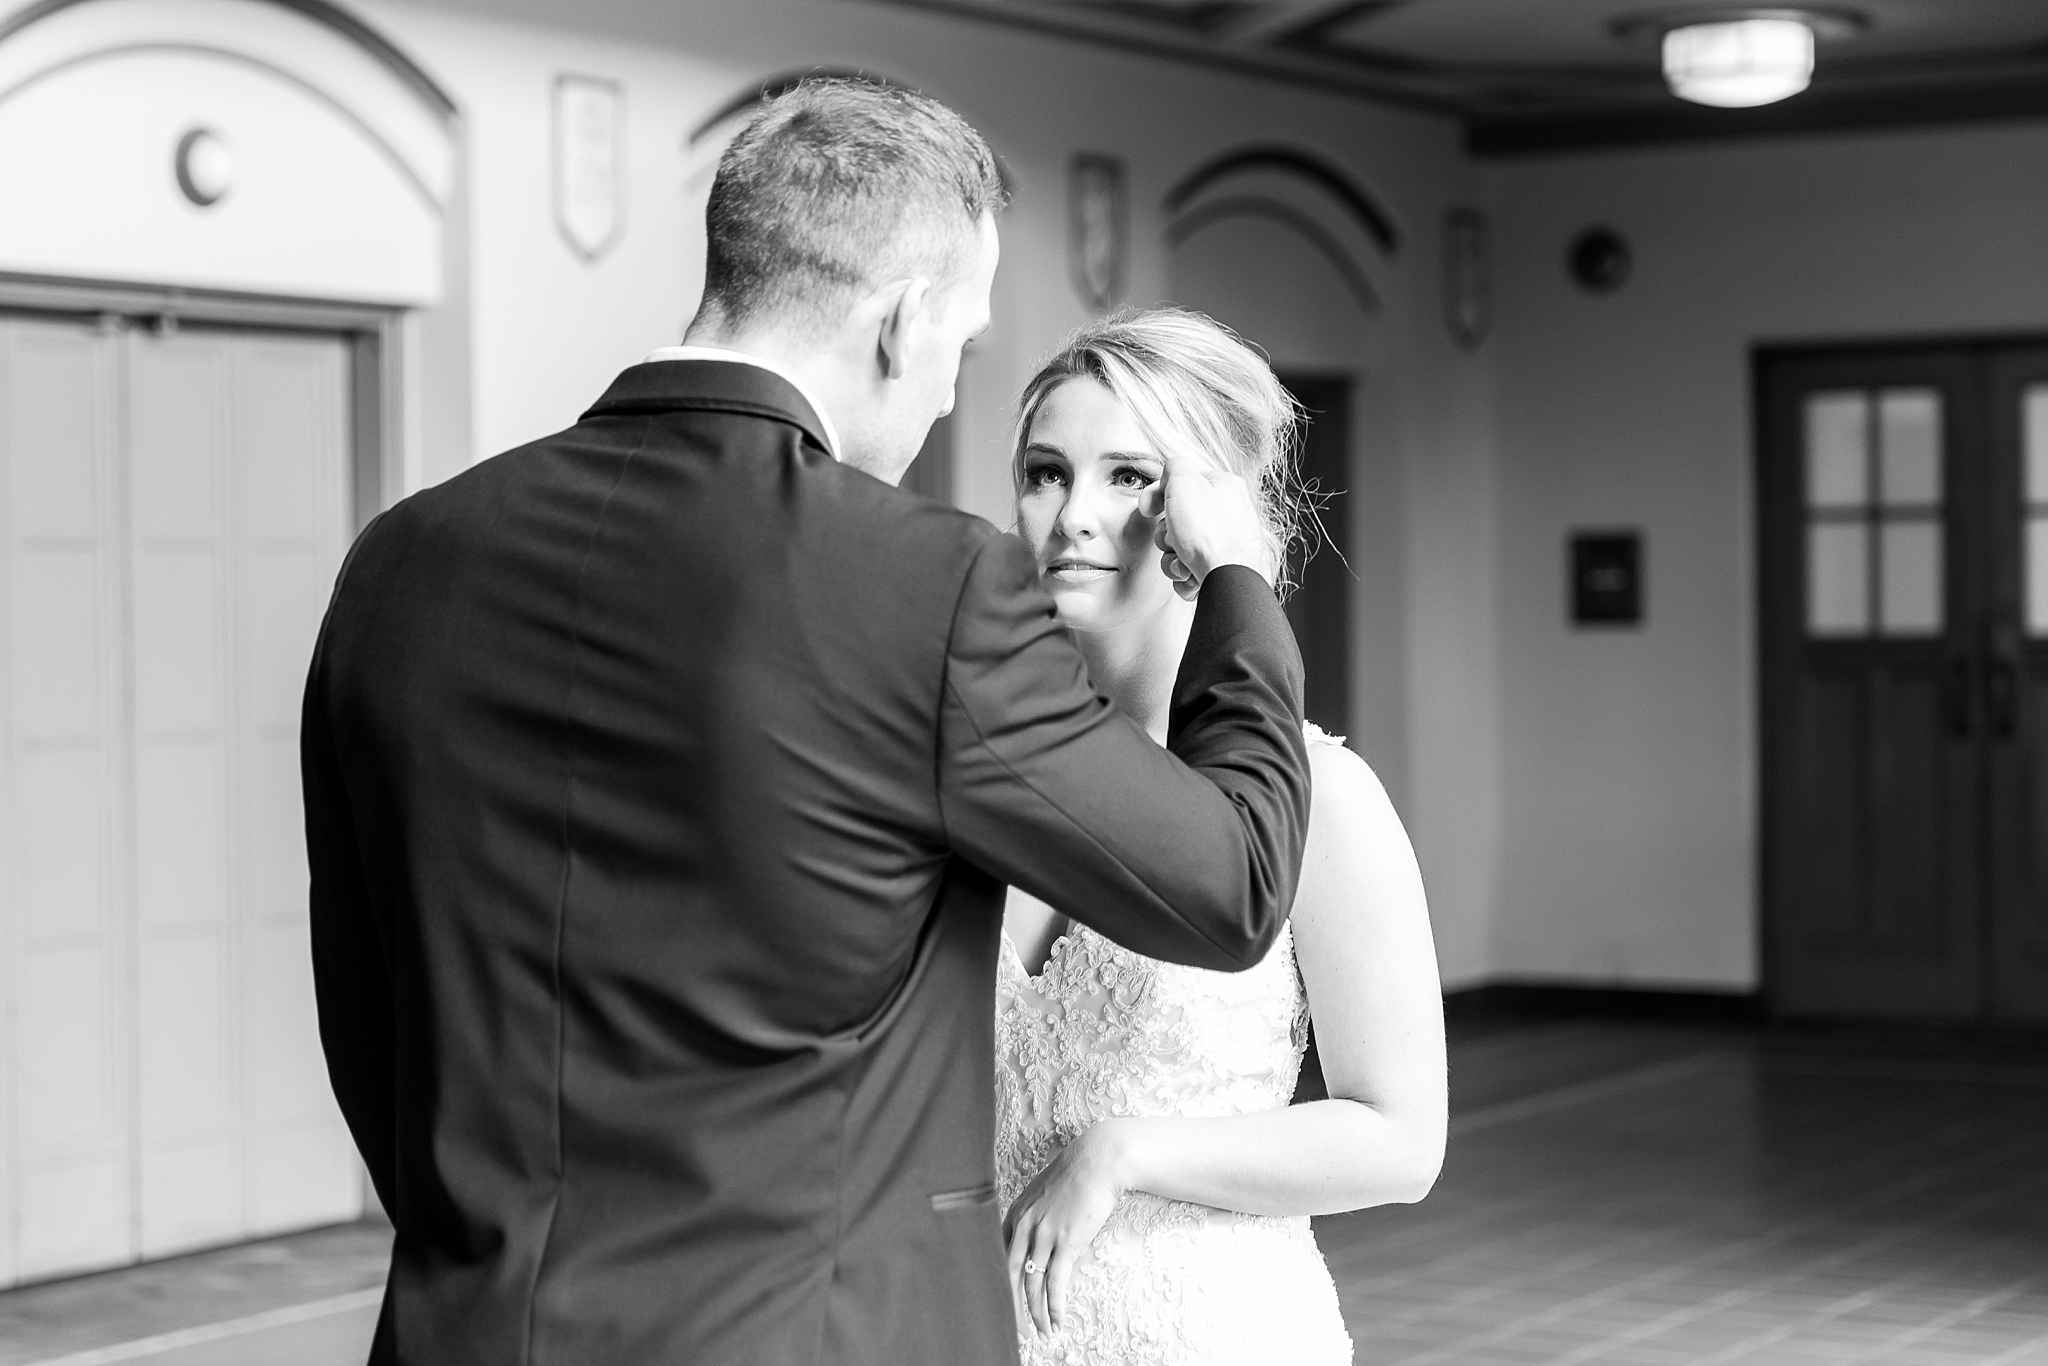 joyful-romantic-modern-laid-back-wedding-photography-in-detroit-ann-arbor-northern-mi-and-chicago-by-courtney-carolyn-photography_0002.jpg